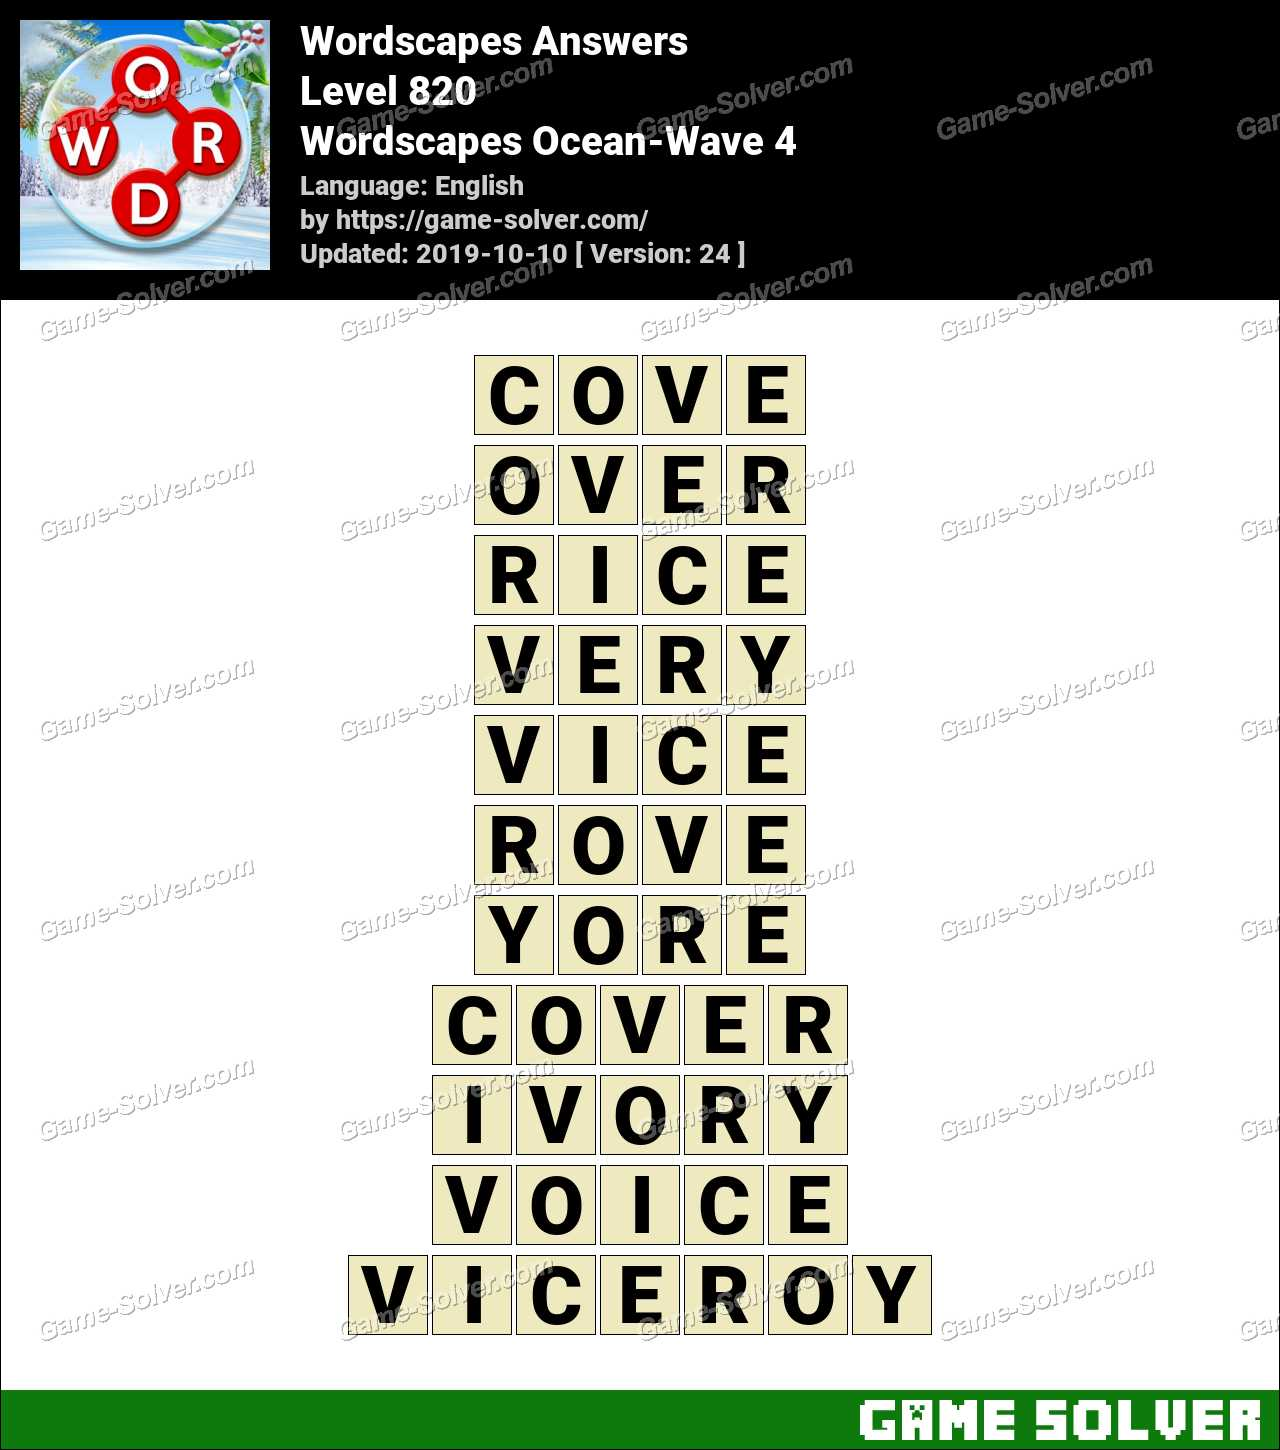 Wordscapes Ocean-Wave 4 Answers